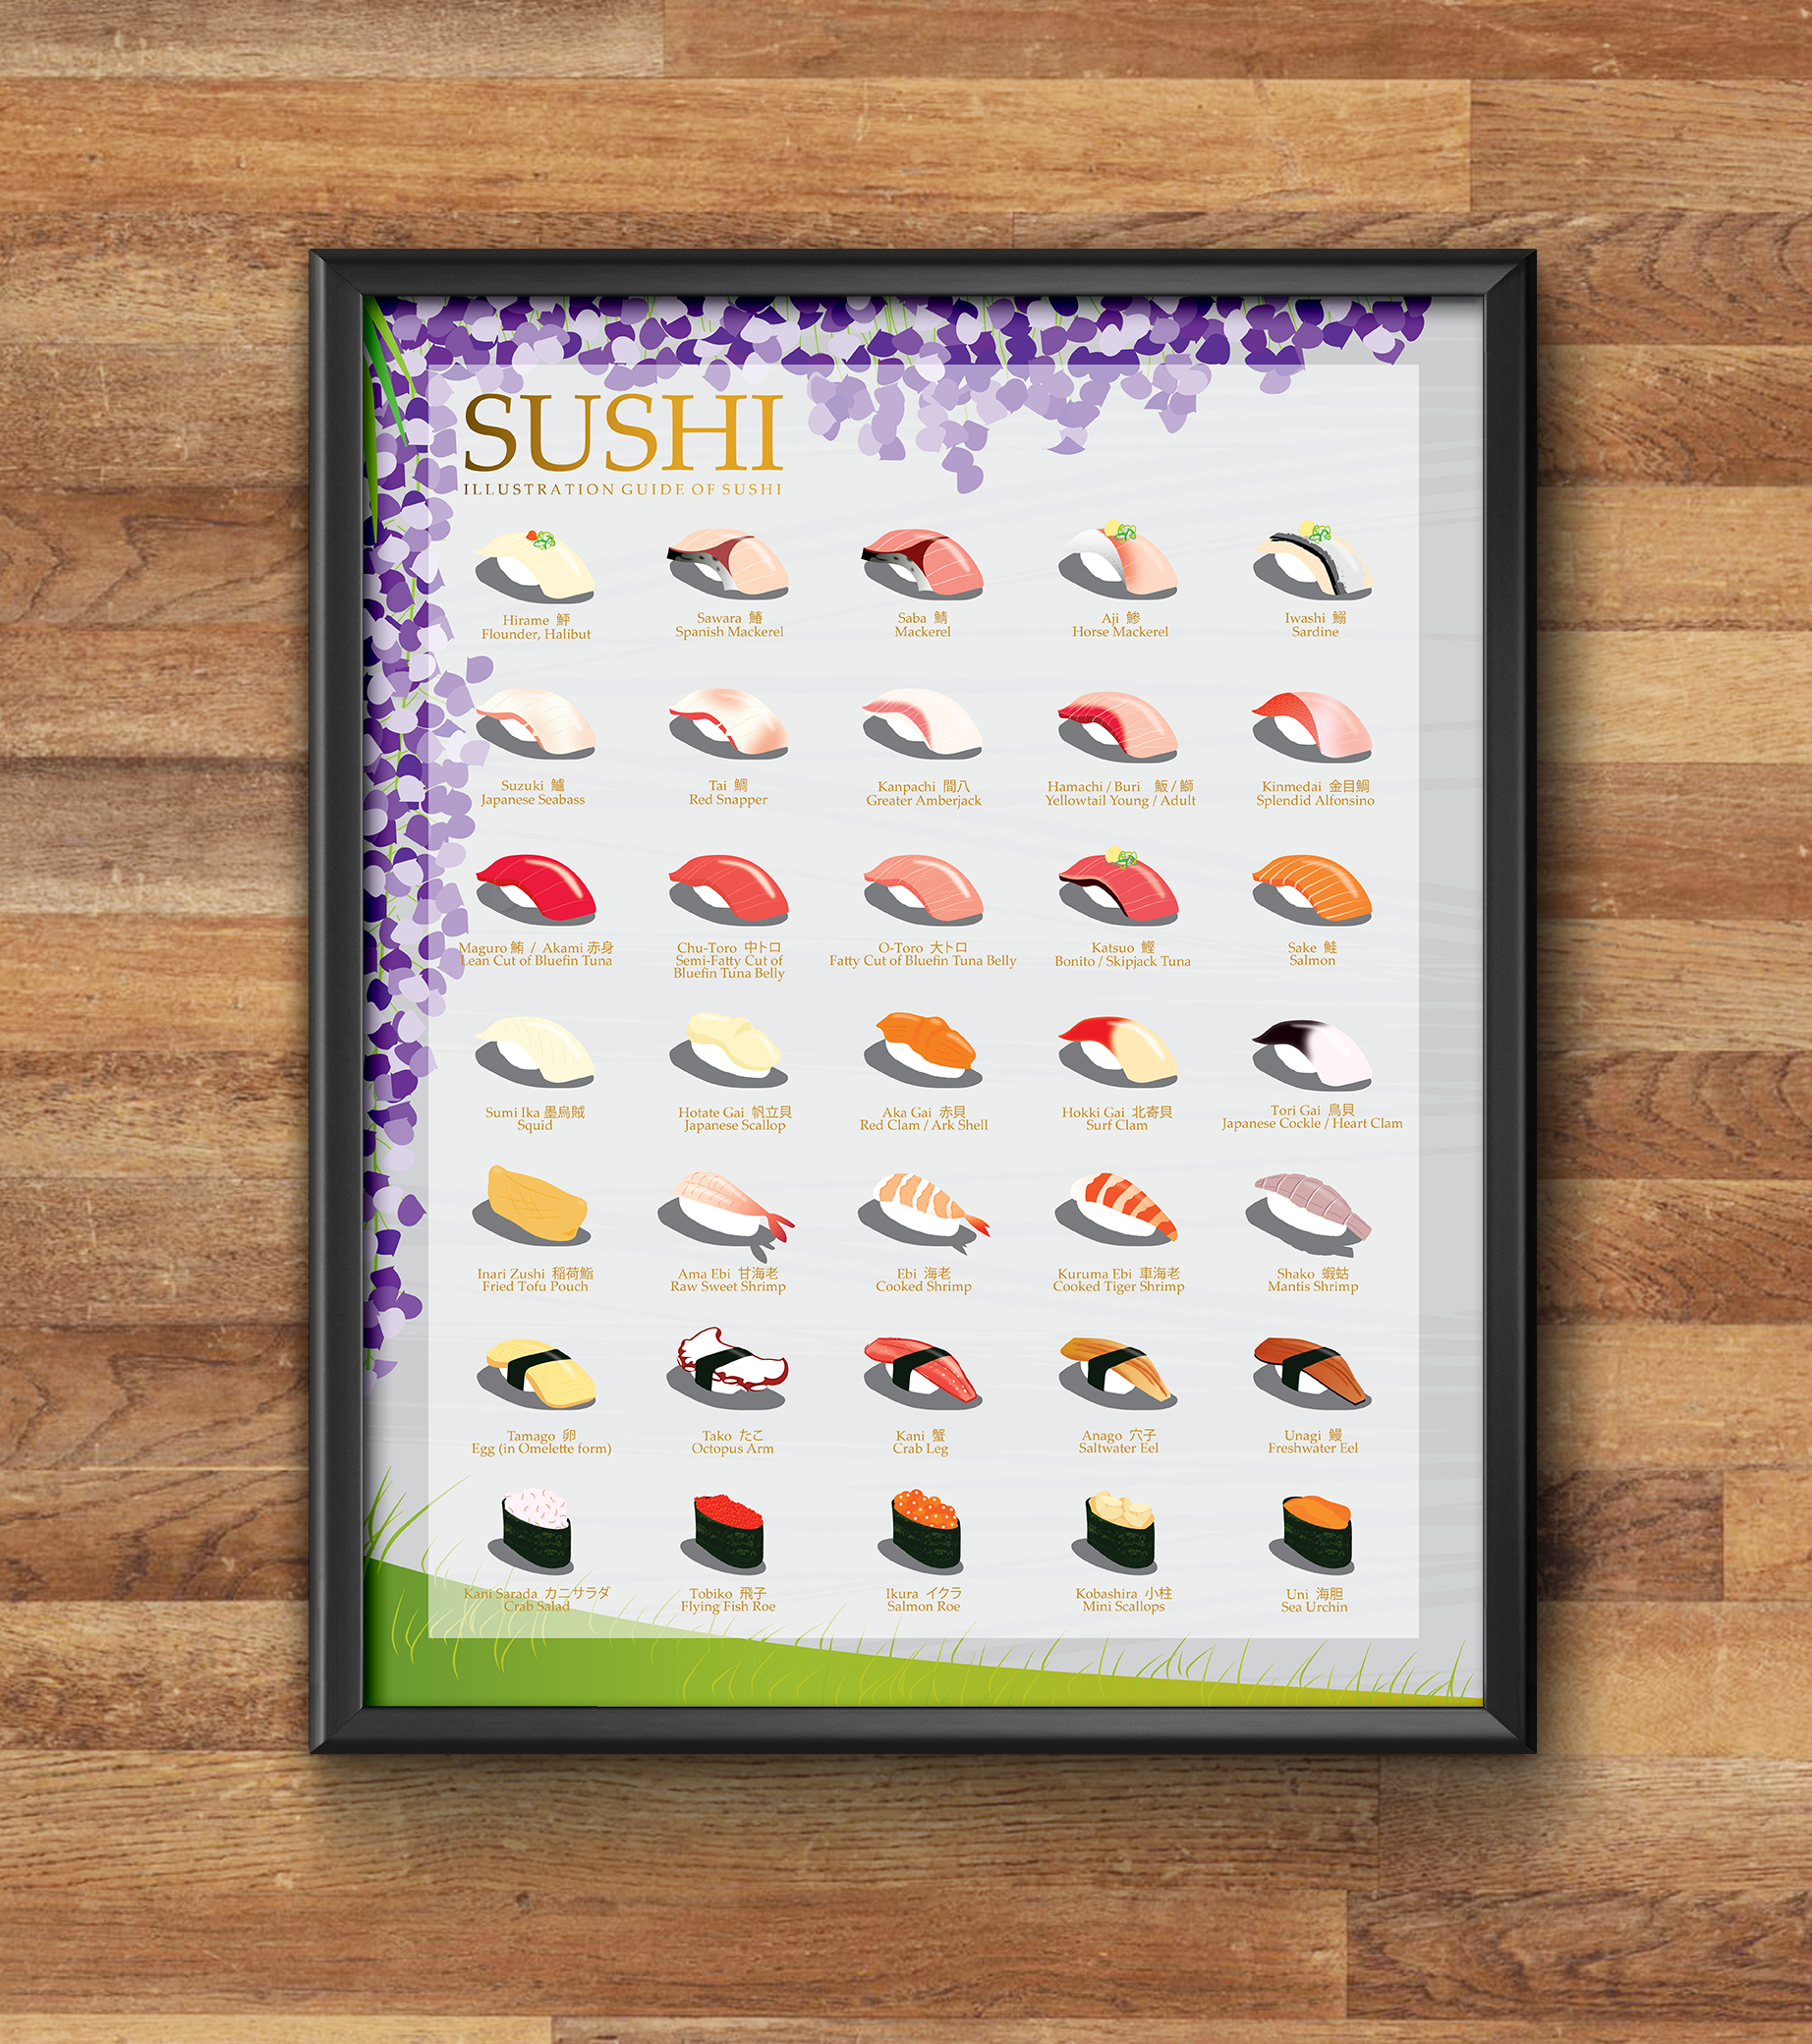 The Sushi Poster